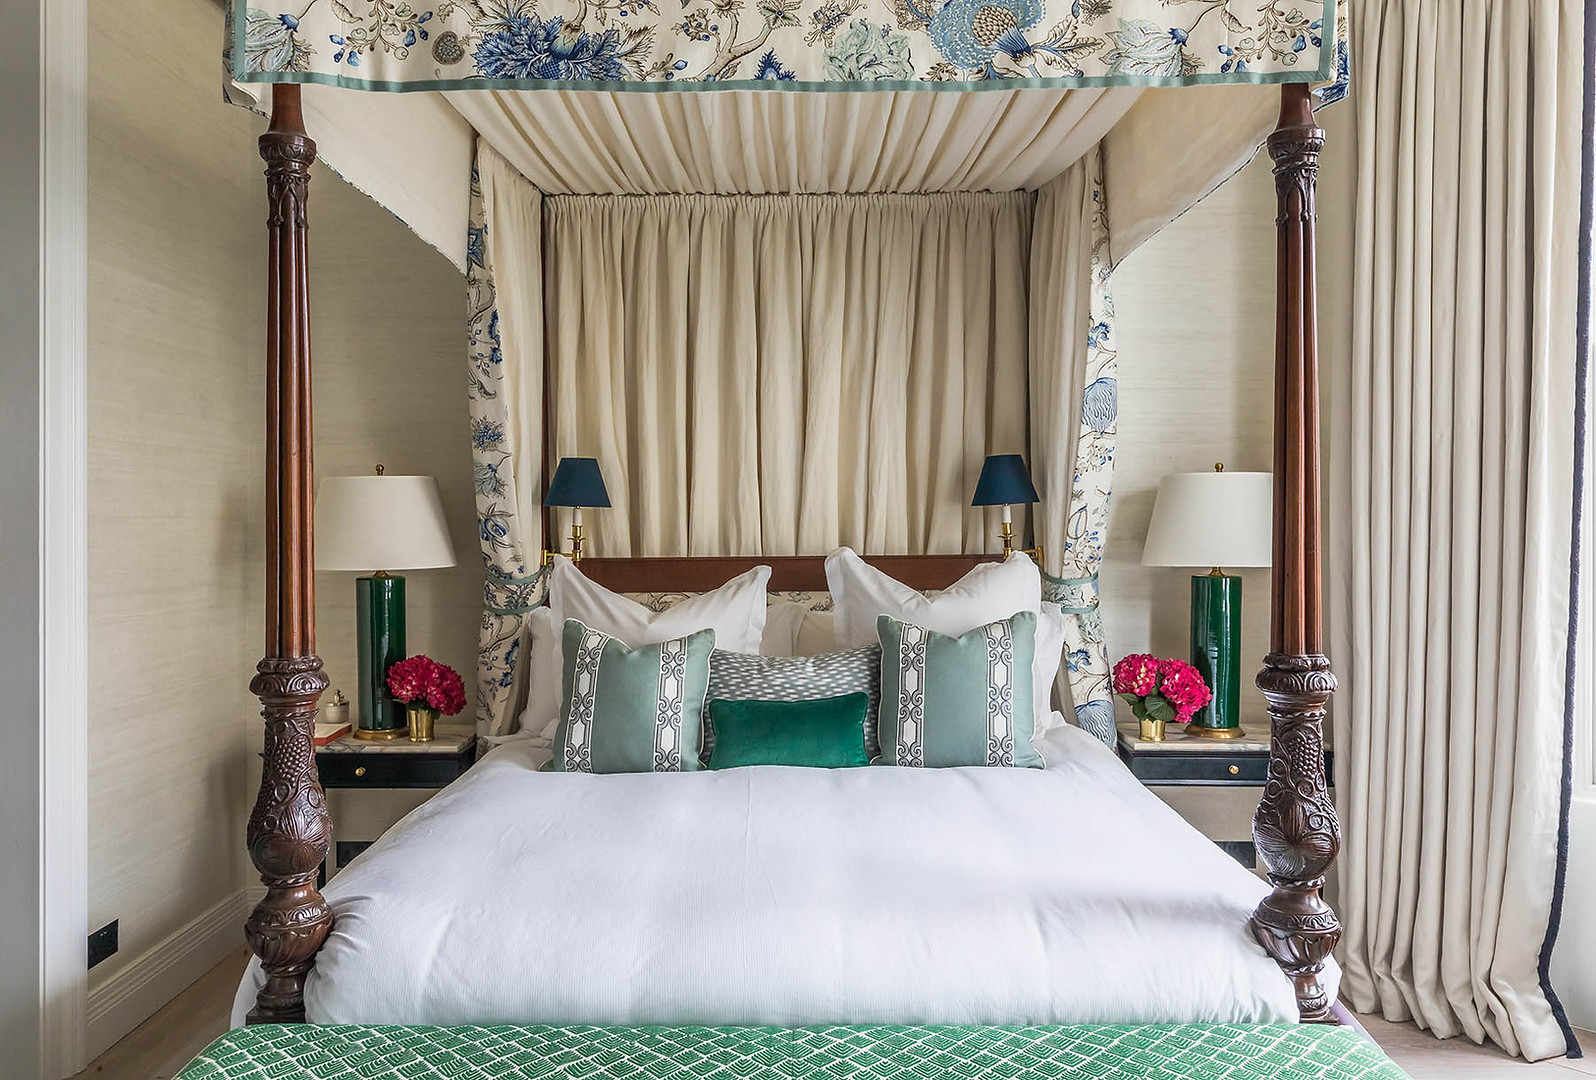 Bed Canopy and Curtains - Pat Giddens Ltd Interior Design - Barlow and Barlow Photographer - J Bond Photography